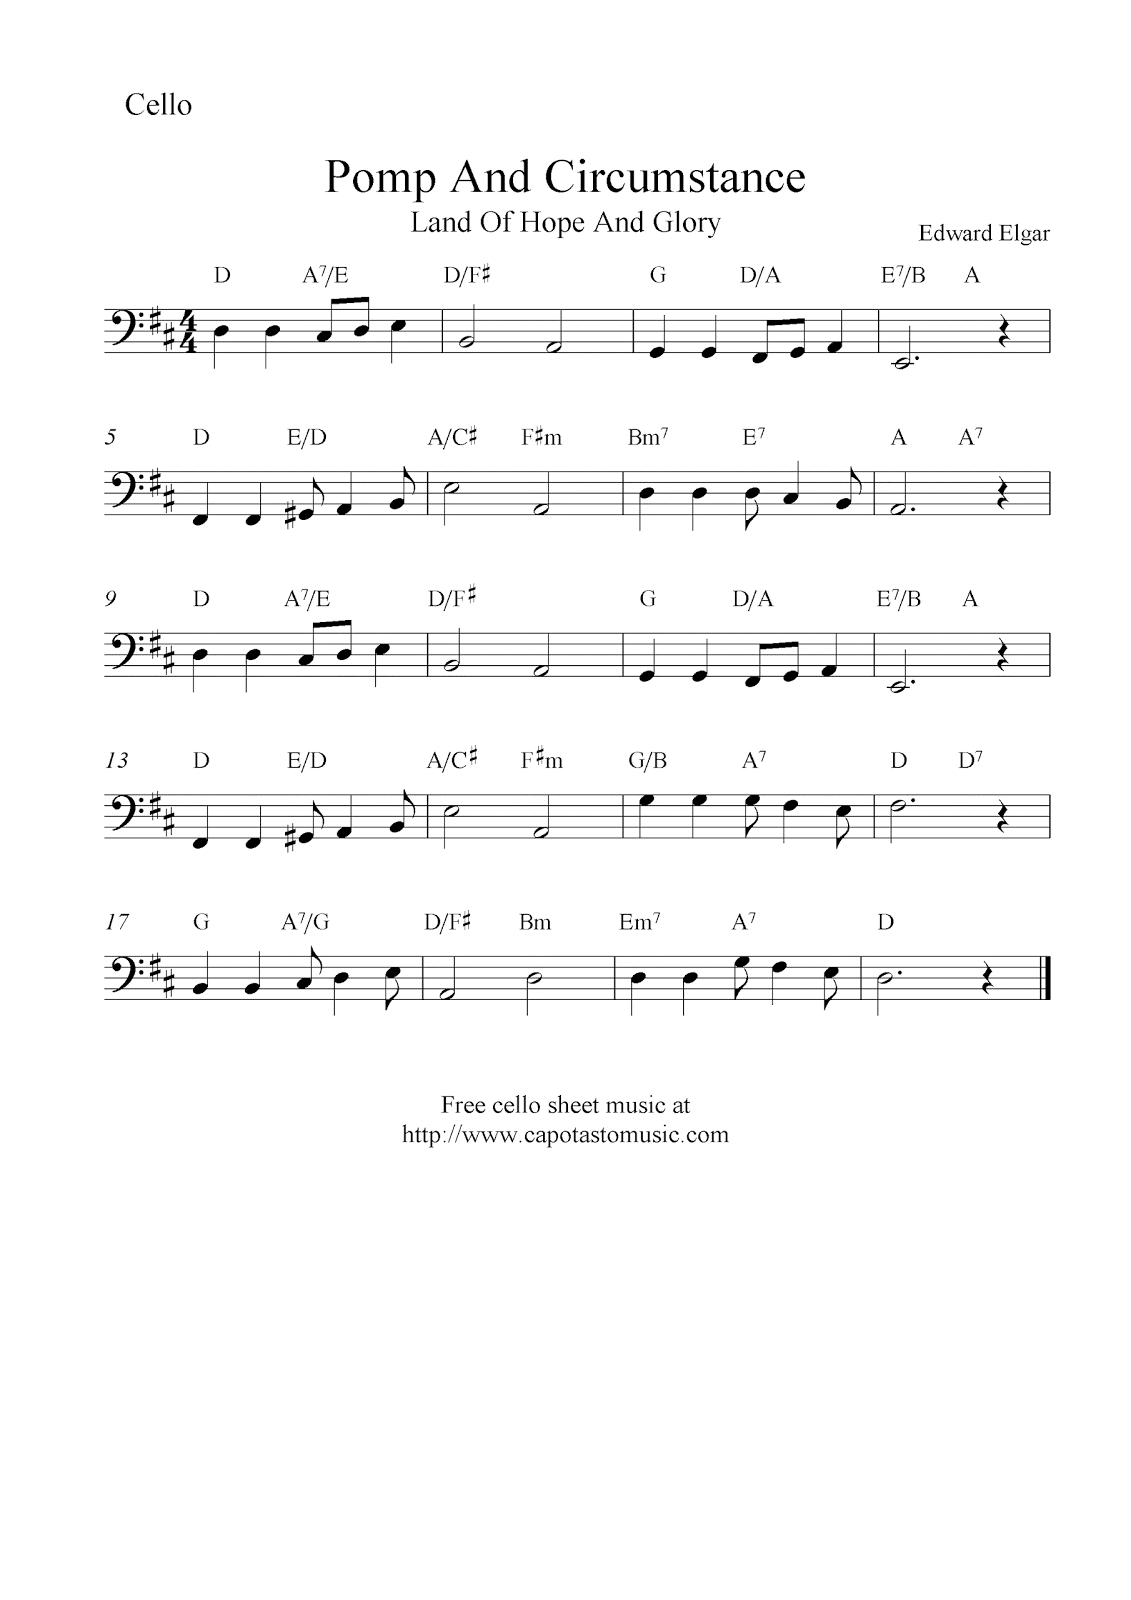 Pomp And Circumstance (Land Of Hope And Glory), Free Cello Sheet - Free Printable Sheet Music Pomp And Circumstance